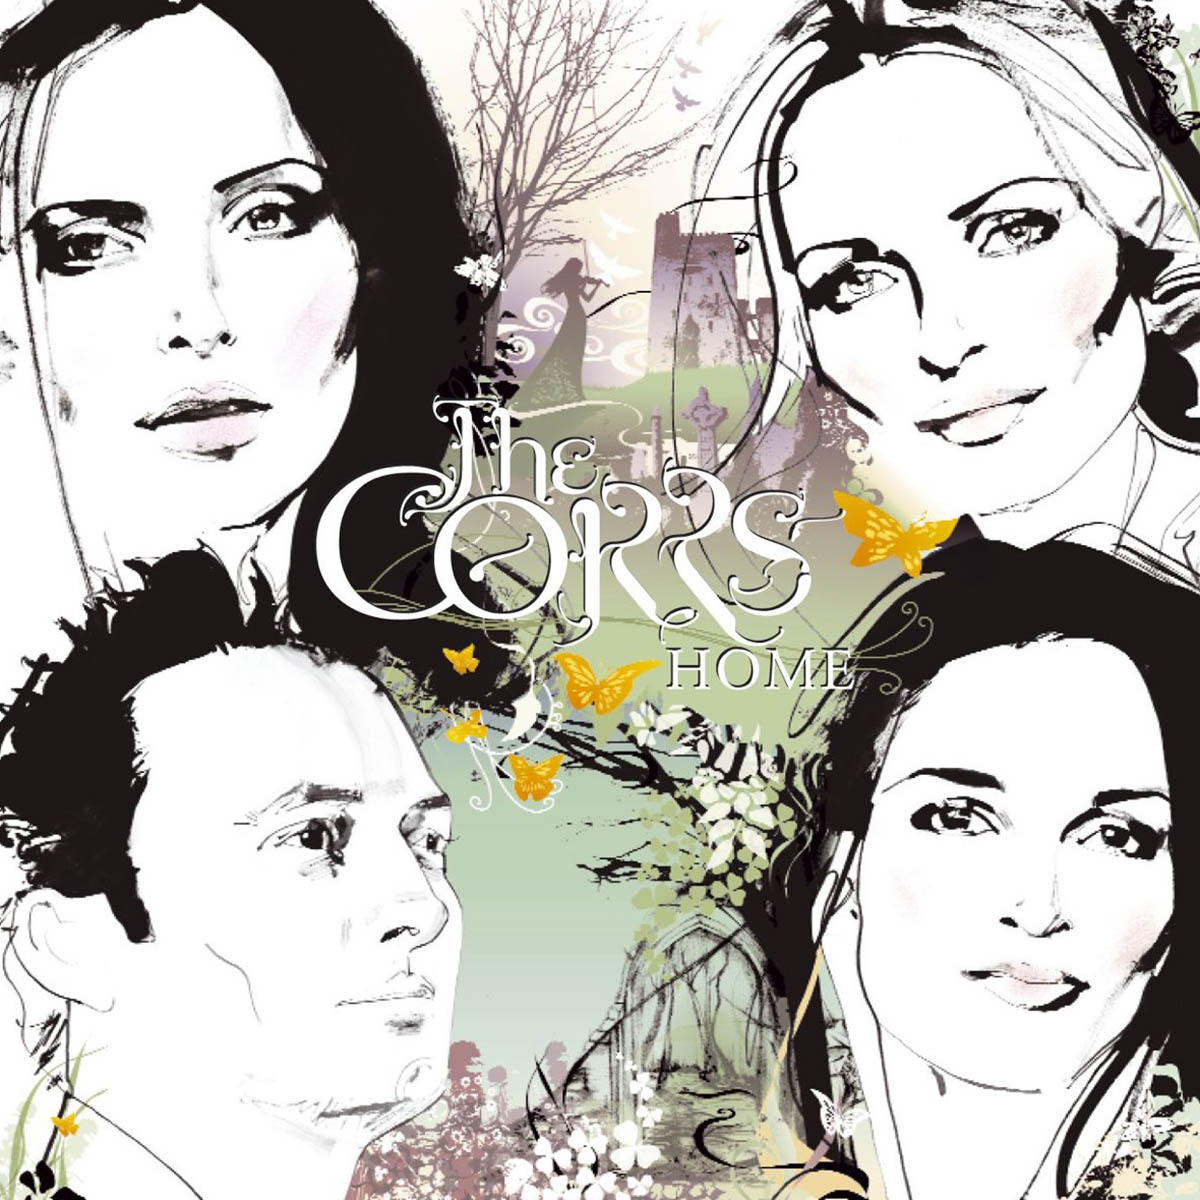 The Corrs, Home